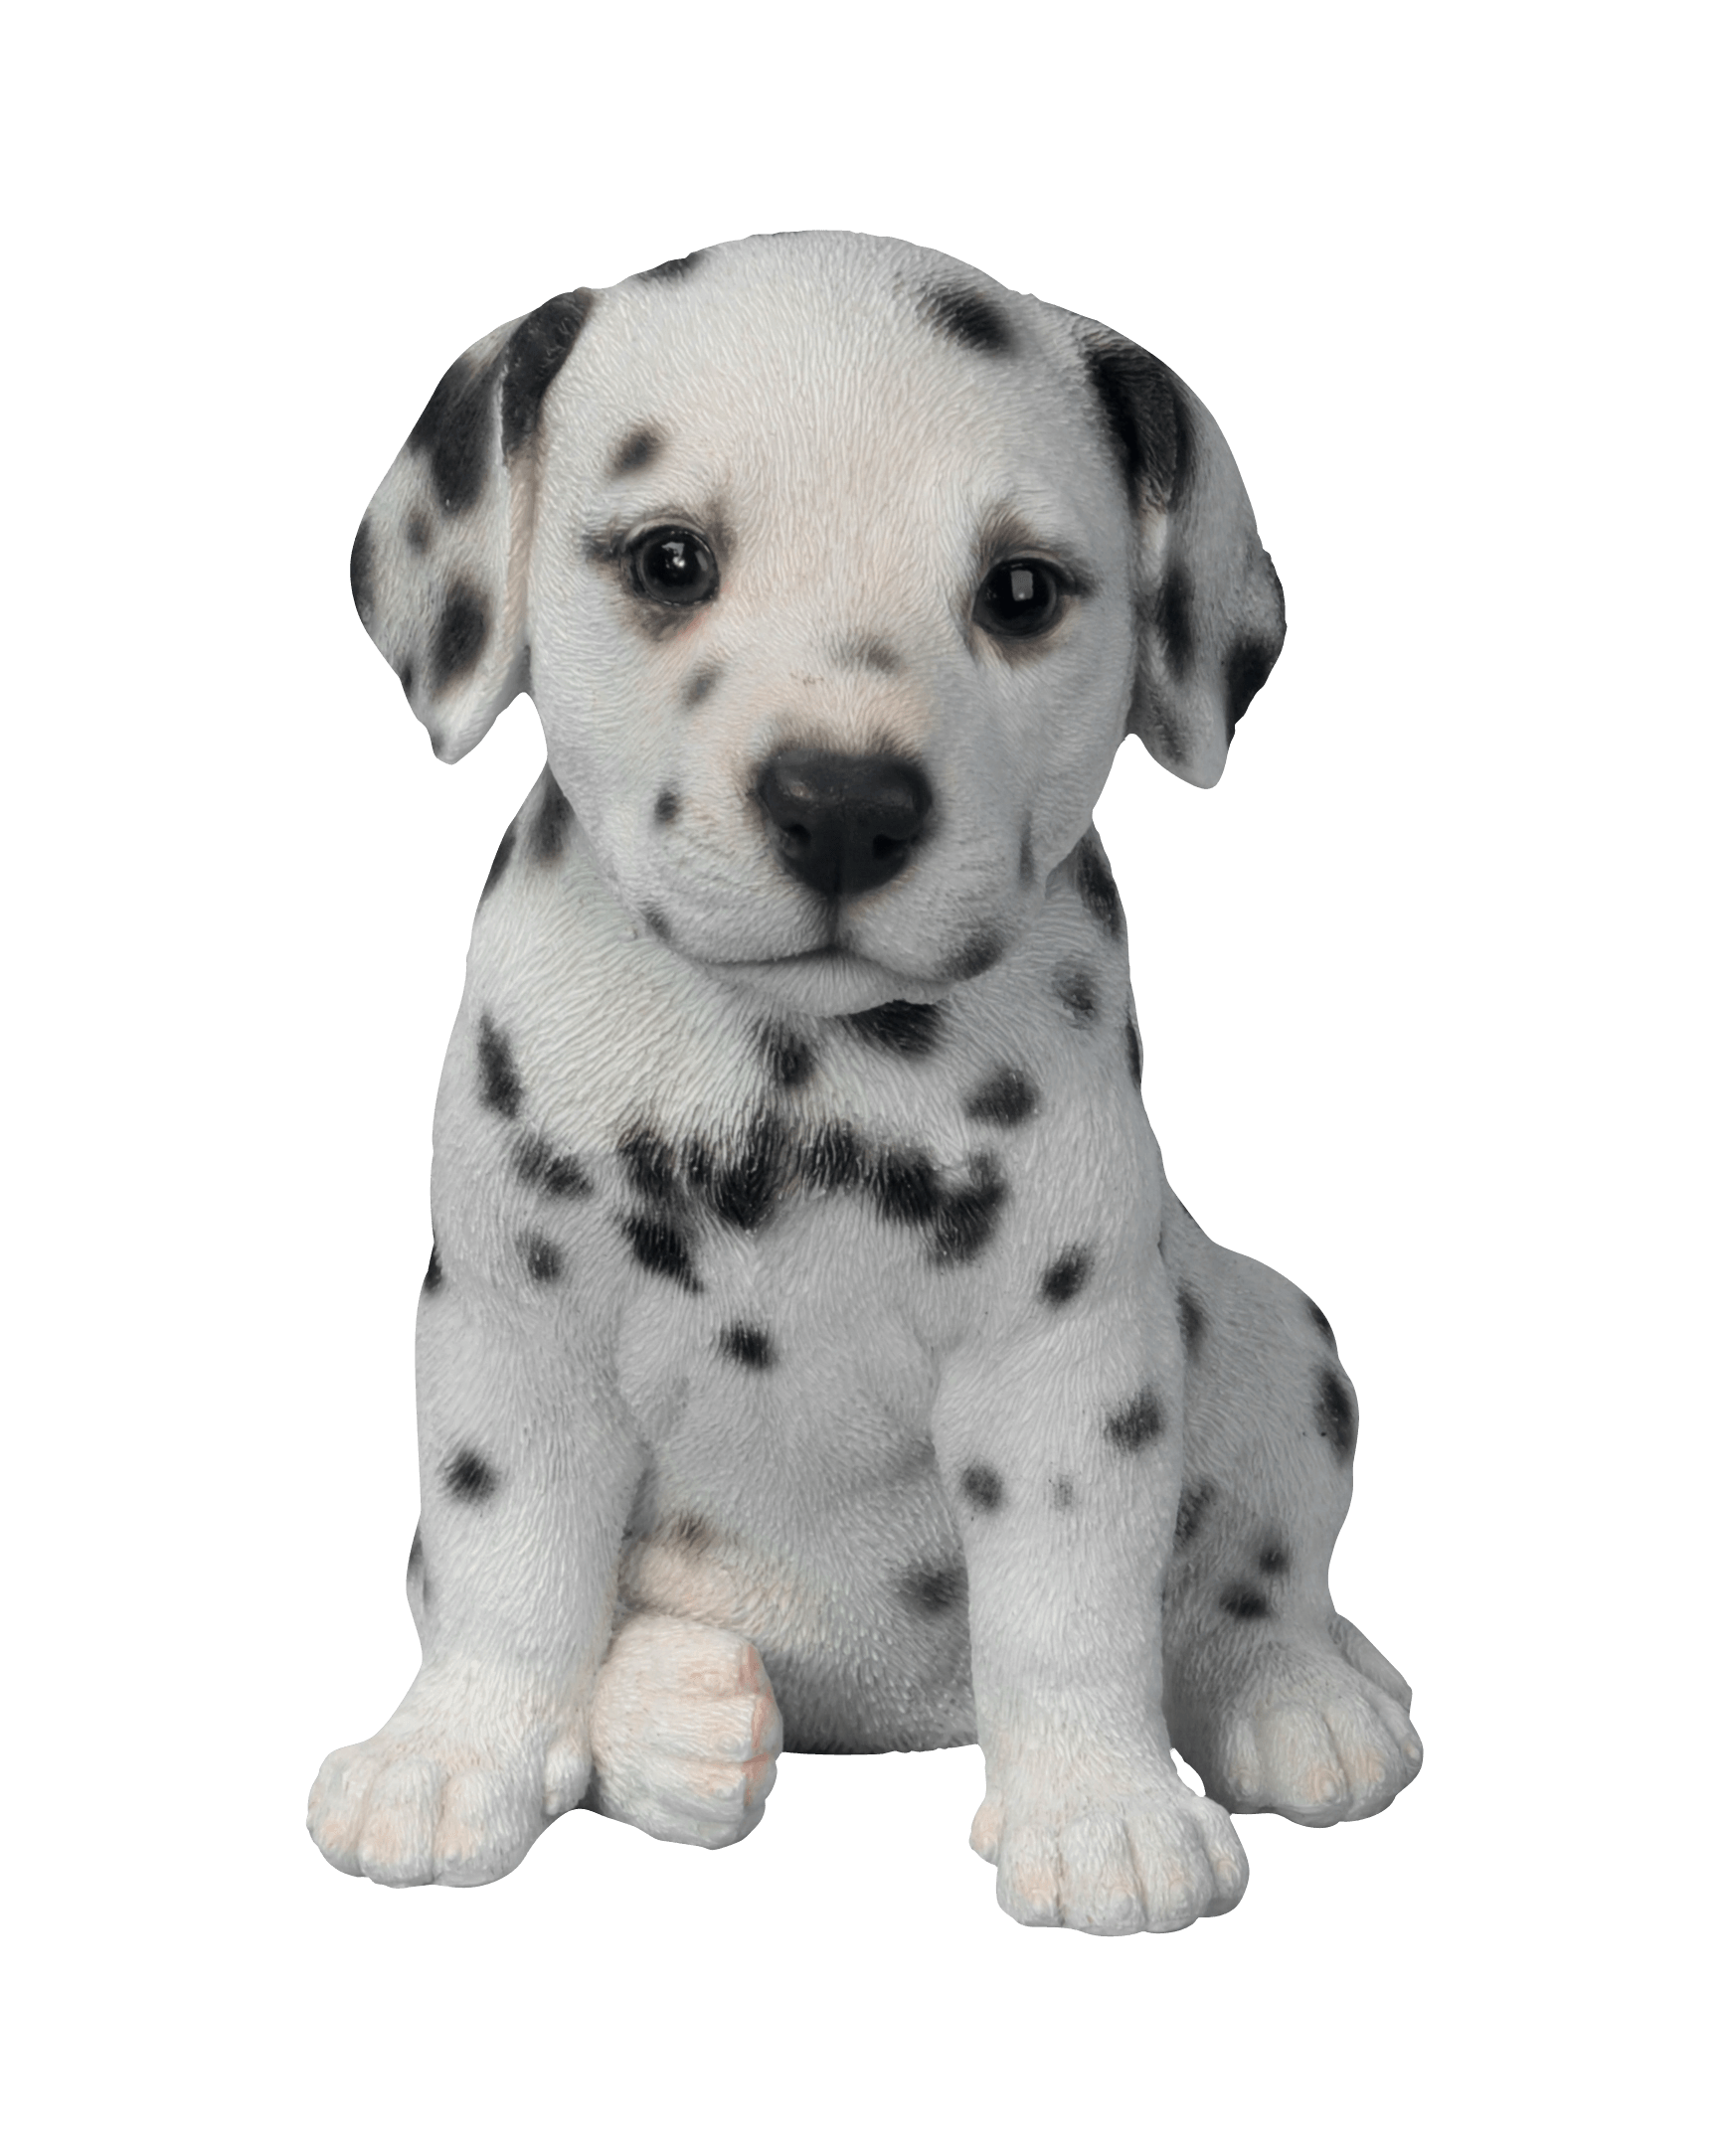 Dalmatian Puppy - Cute Puppies PNG Black And White